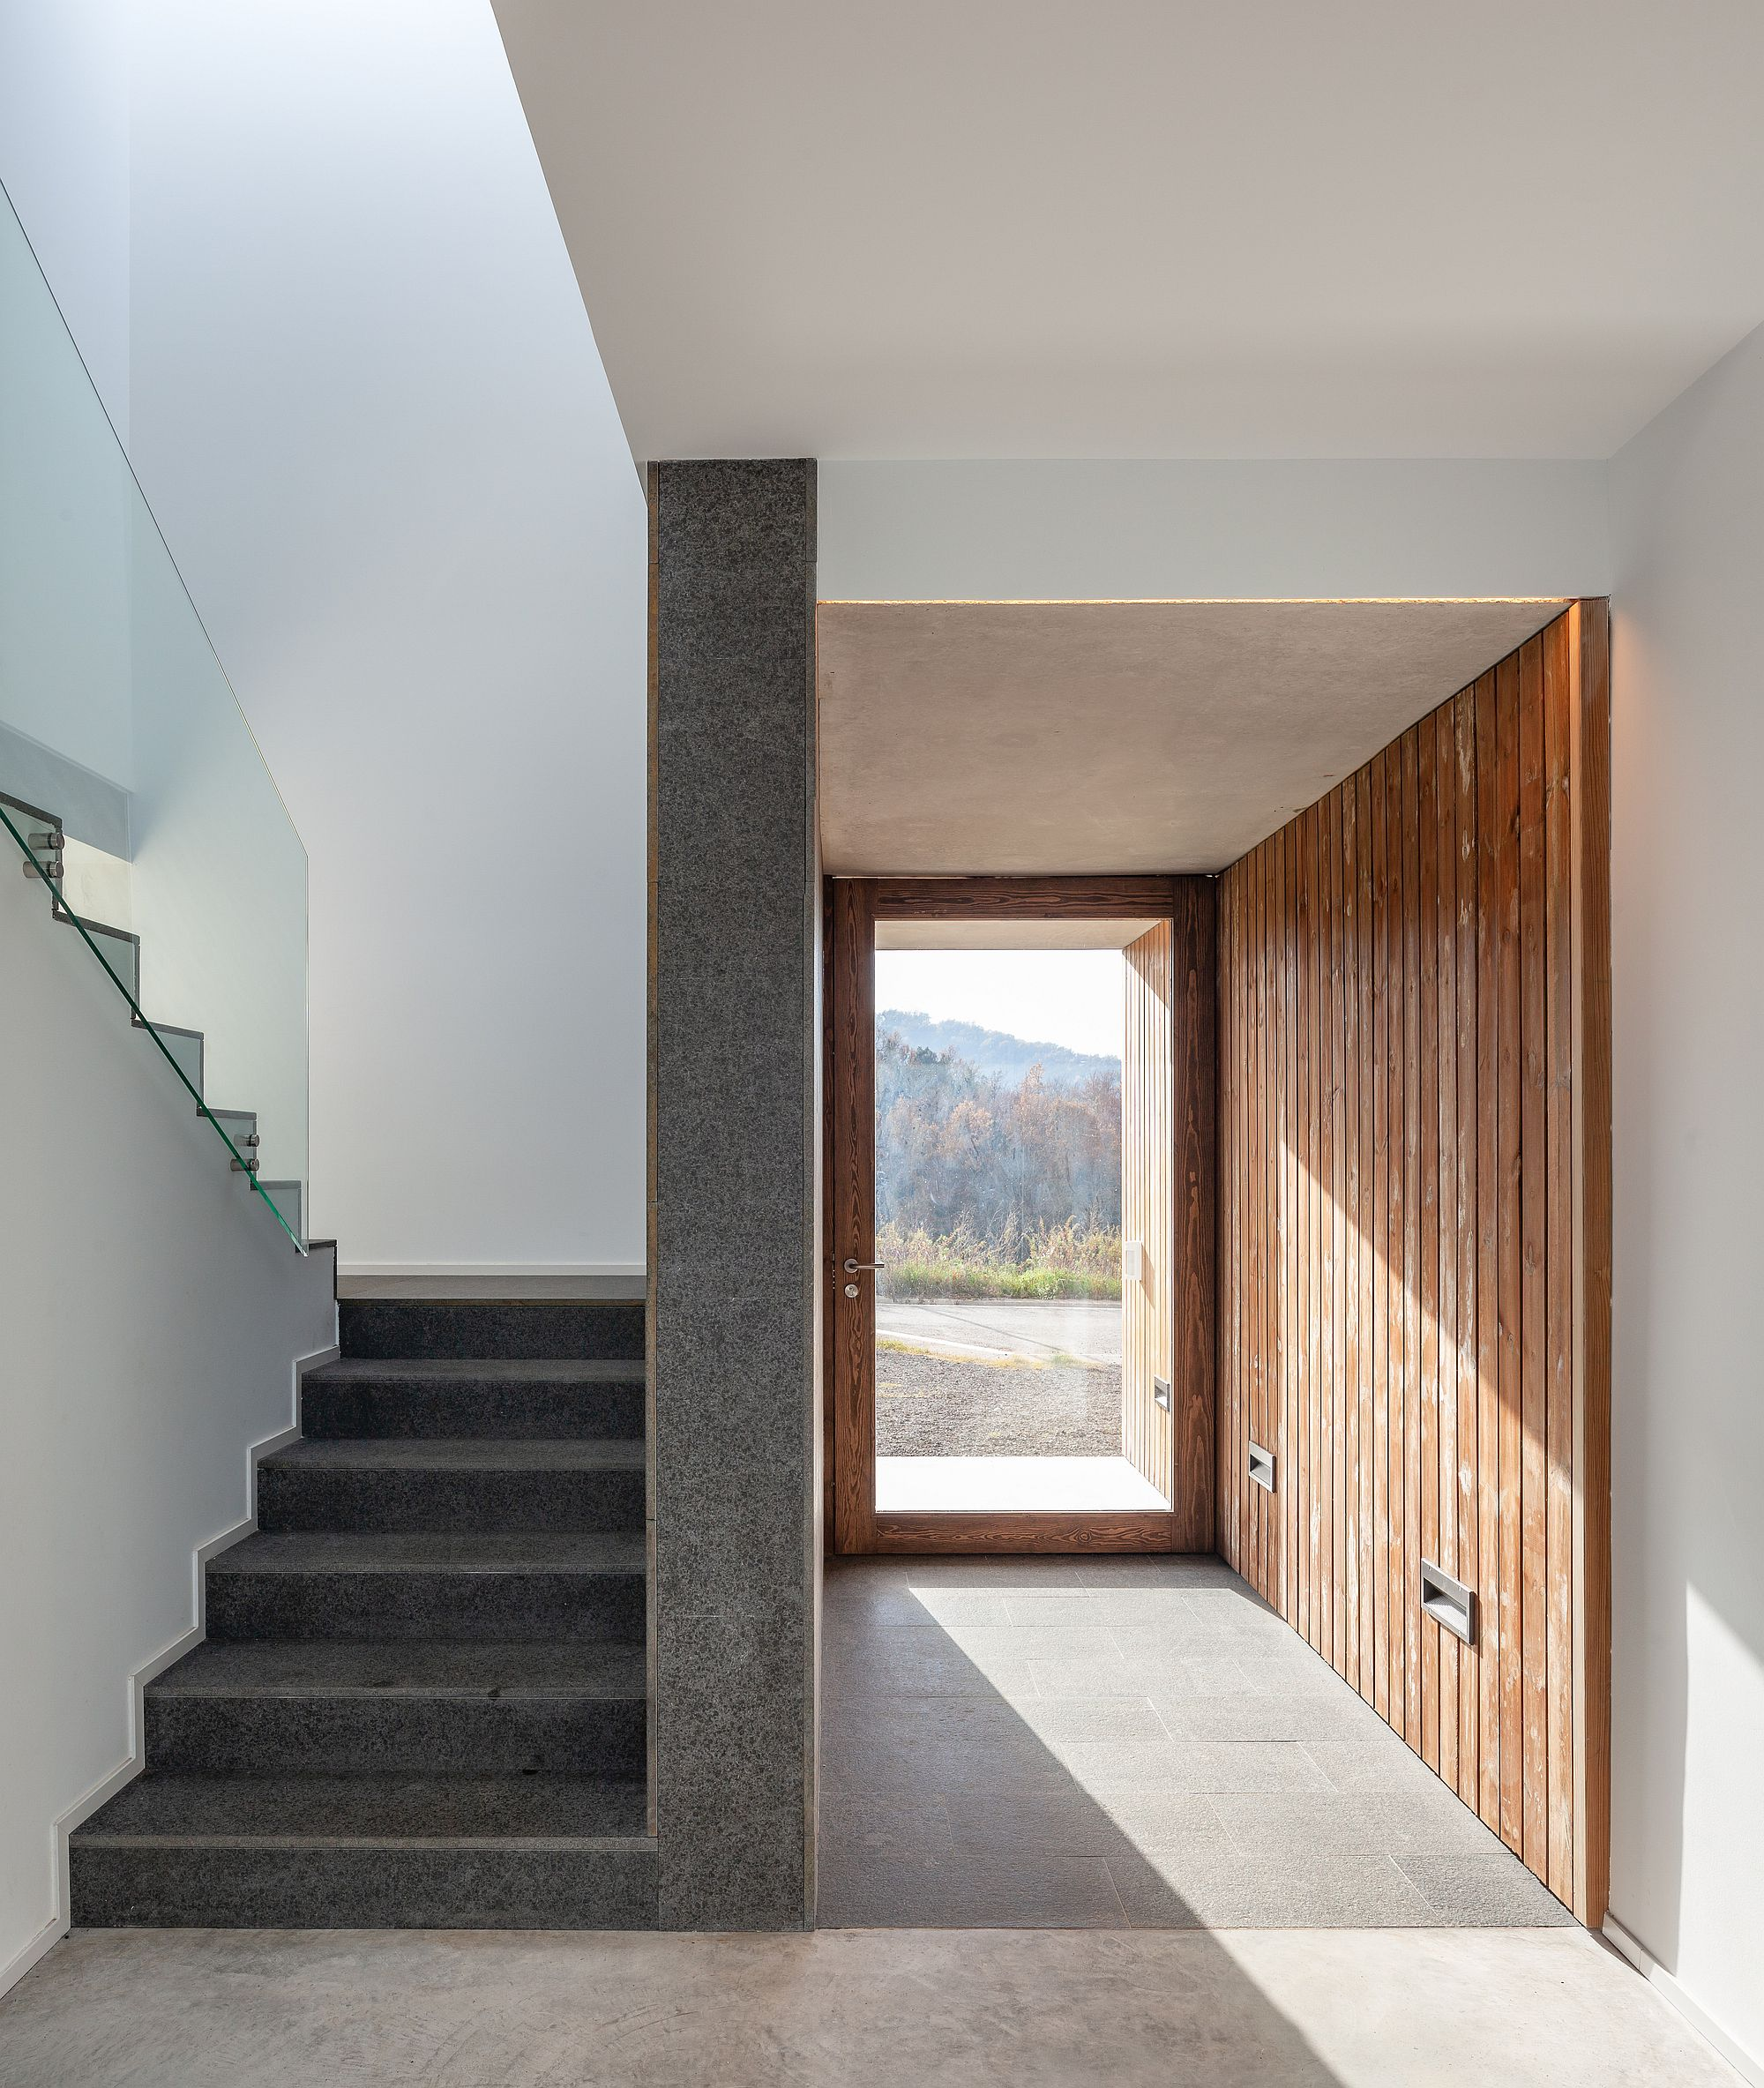 Minimal and modern entry to the home in Olot, Spain